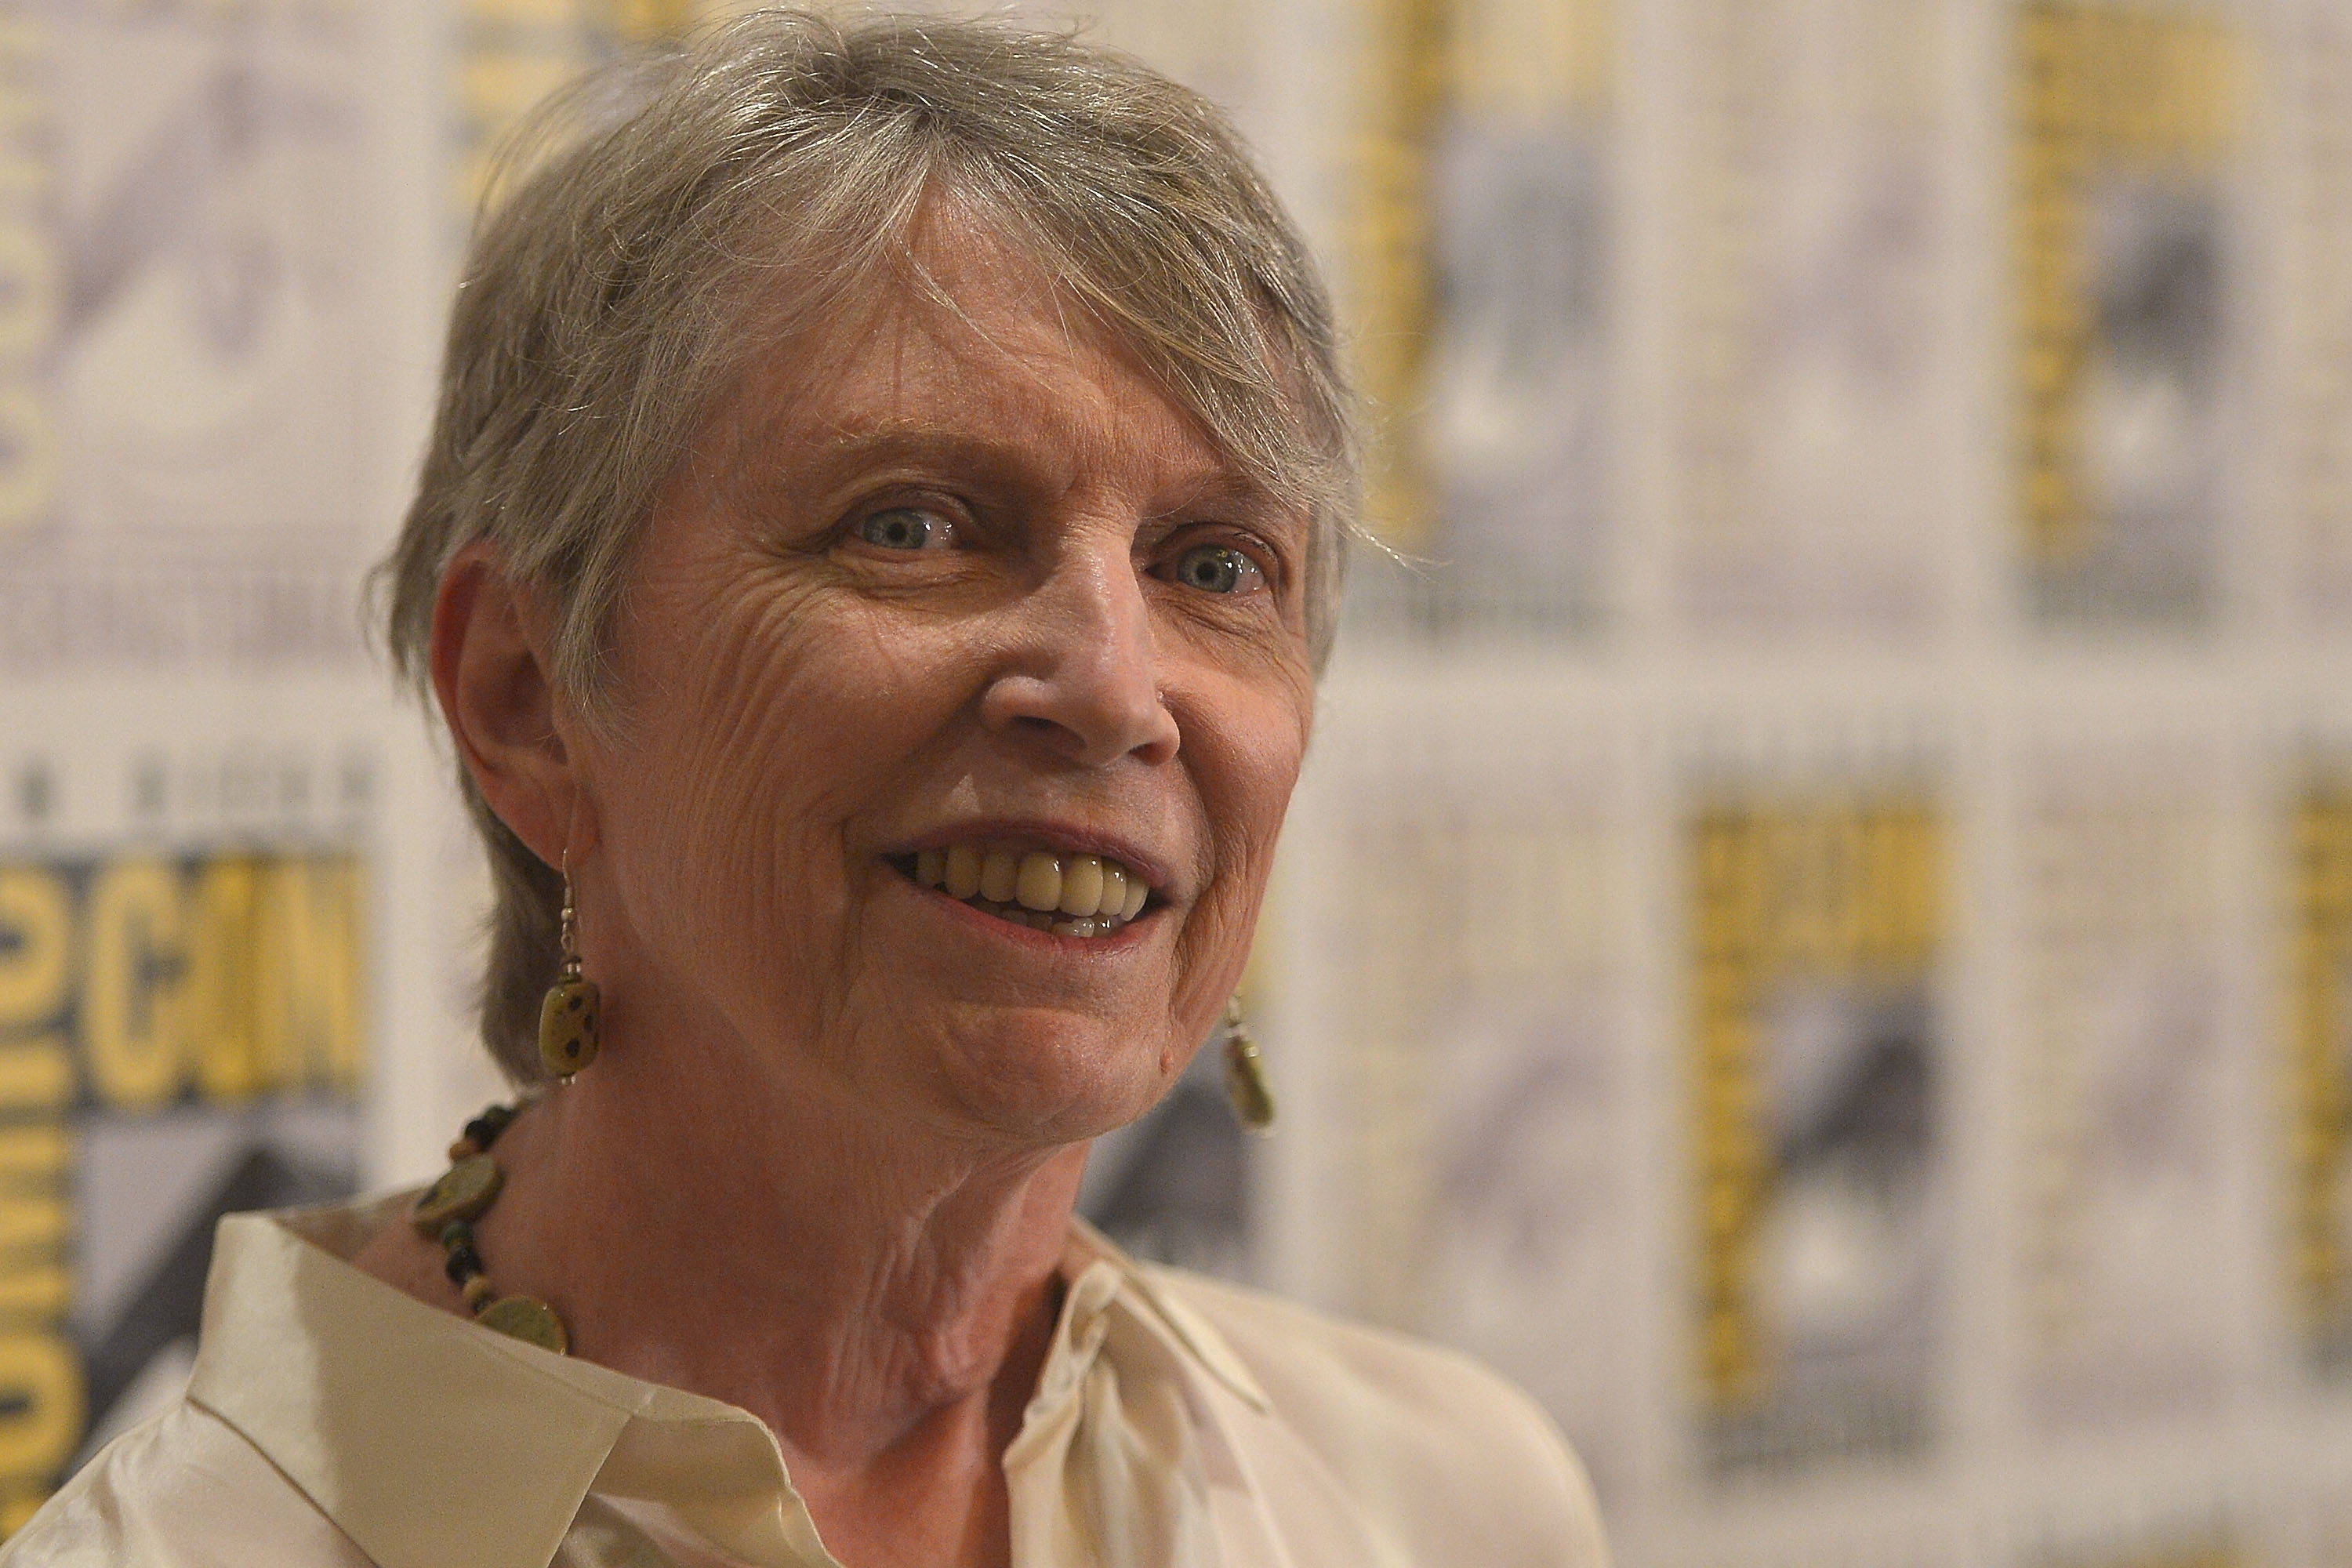 Lois Lowry attends The Weinstein Company Presents  THE GIVER  At Comic-Con 2014 in San Diego on July 24, 2014.